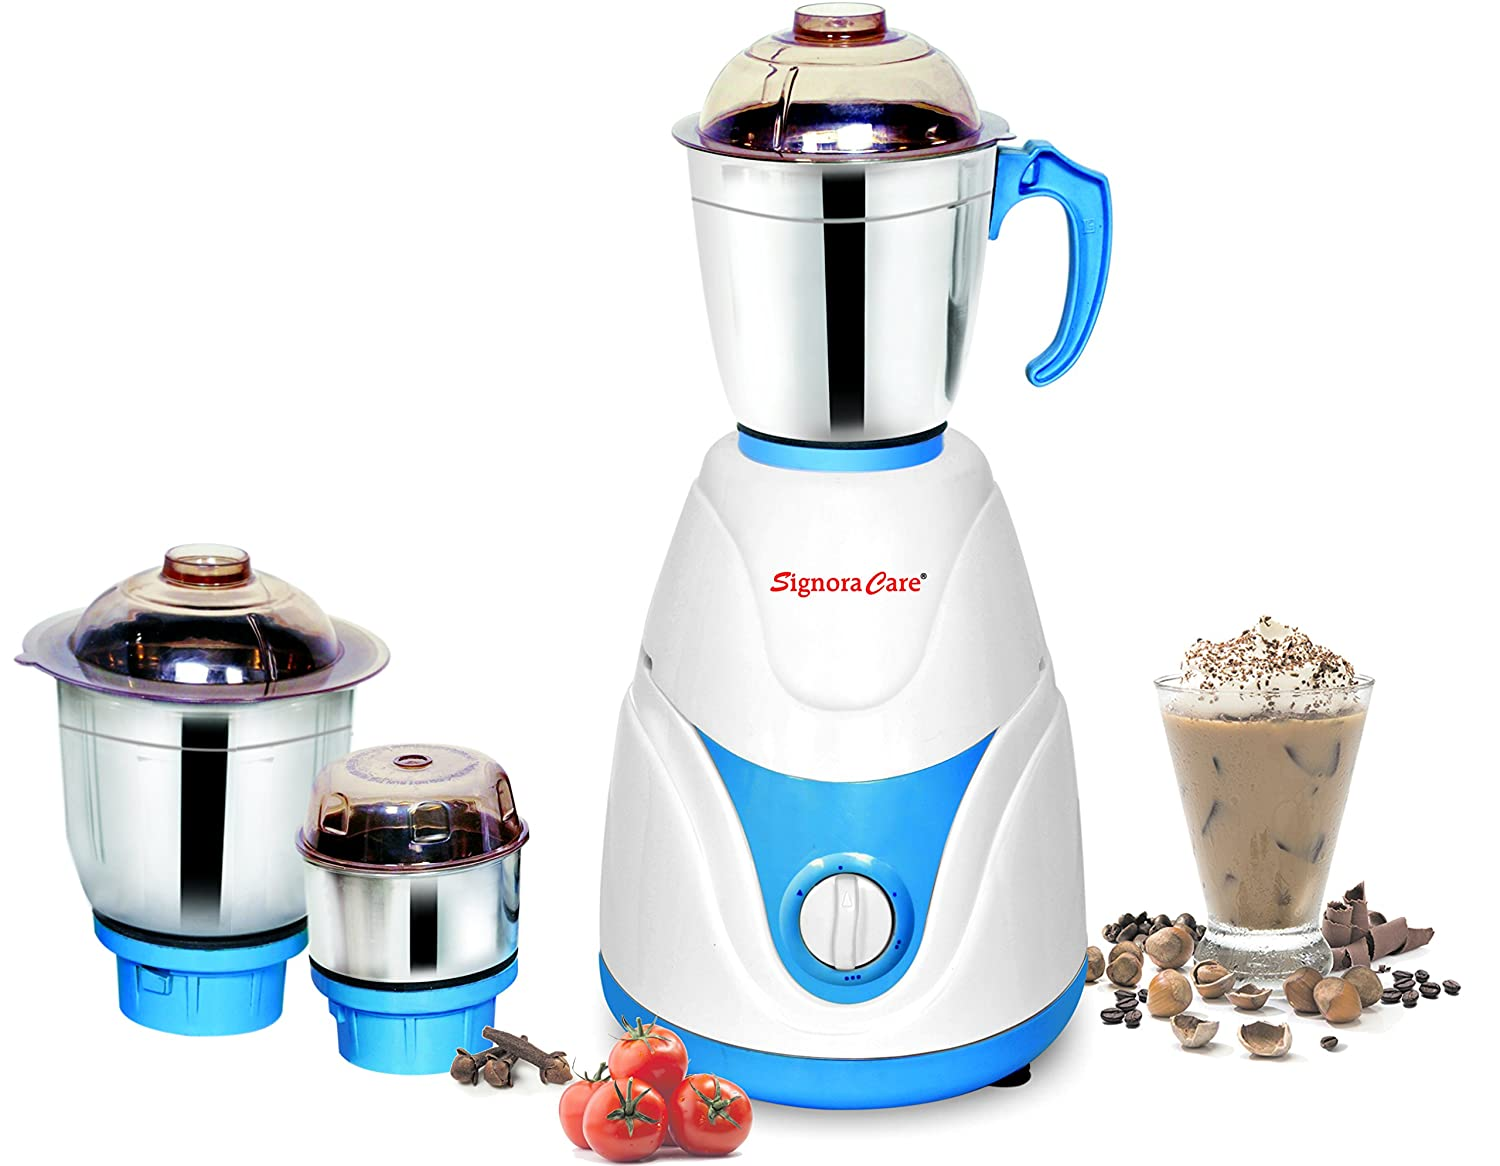 Signora Care Eco Plus 500-Watt Mixer Grinder with 3 Jars (White) By Amazon @ Rs.1,049